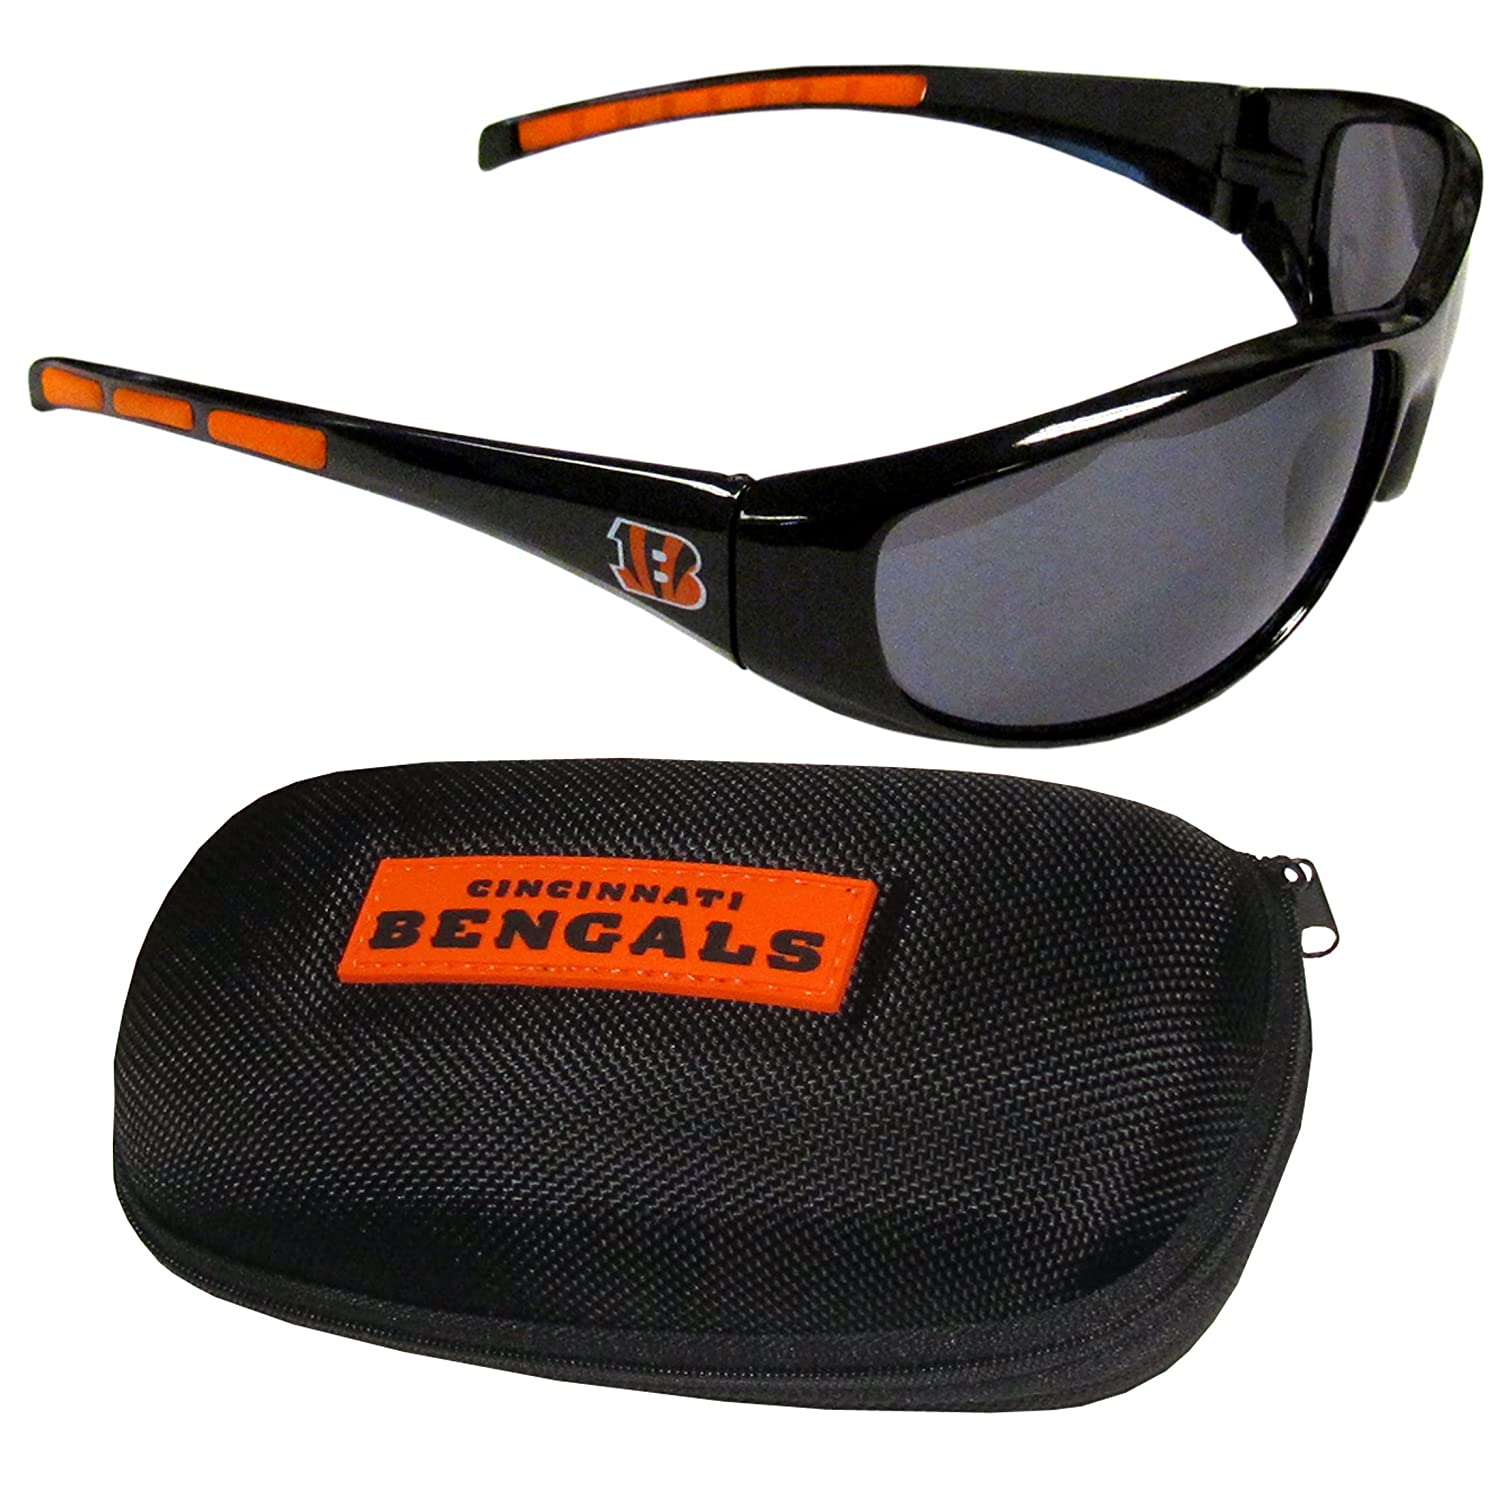 96d5ef6b36a Siskiyou cincinnati bengals wrap sunglasses zippered case black sports  outdoors jpg 1500x1500 Cincinnati bengals sunglasses